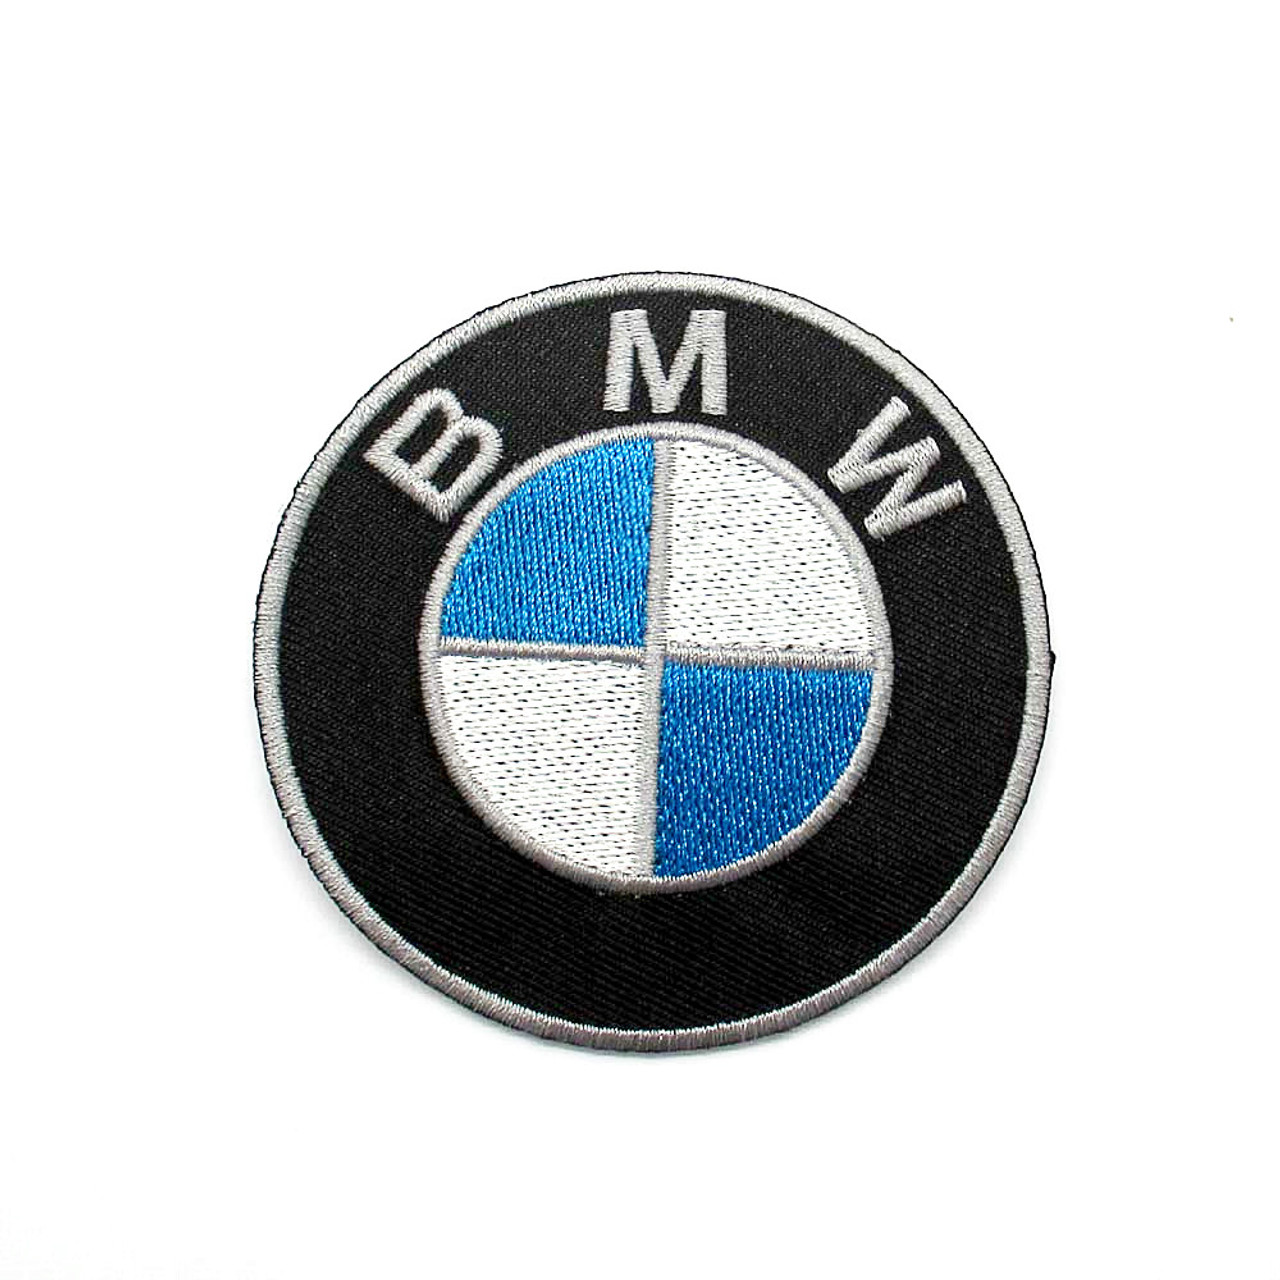 Buy BMW themed Iron on logo embroidery patches 20pcs 3inch- High quality  trusted automotive car spare parts and accessories cool gadgets, badges  logo from benz, audi , bmw , toyota, tesla benzinooautos.org